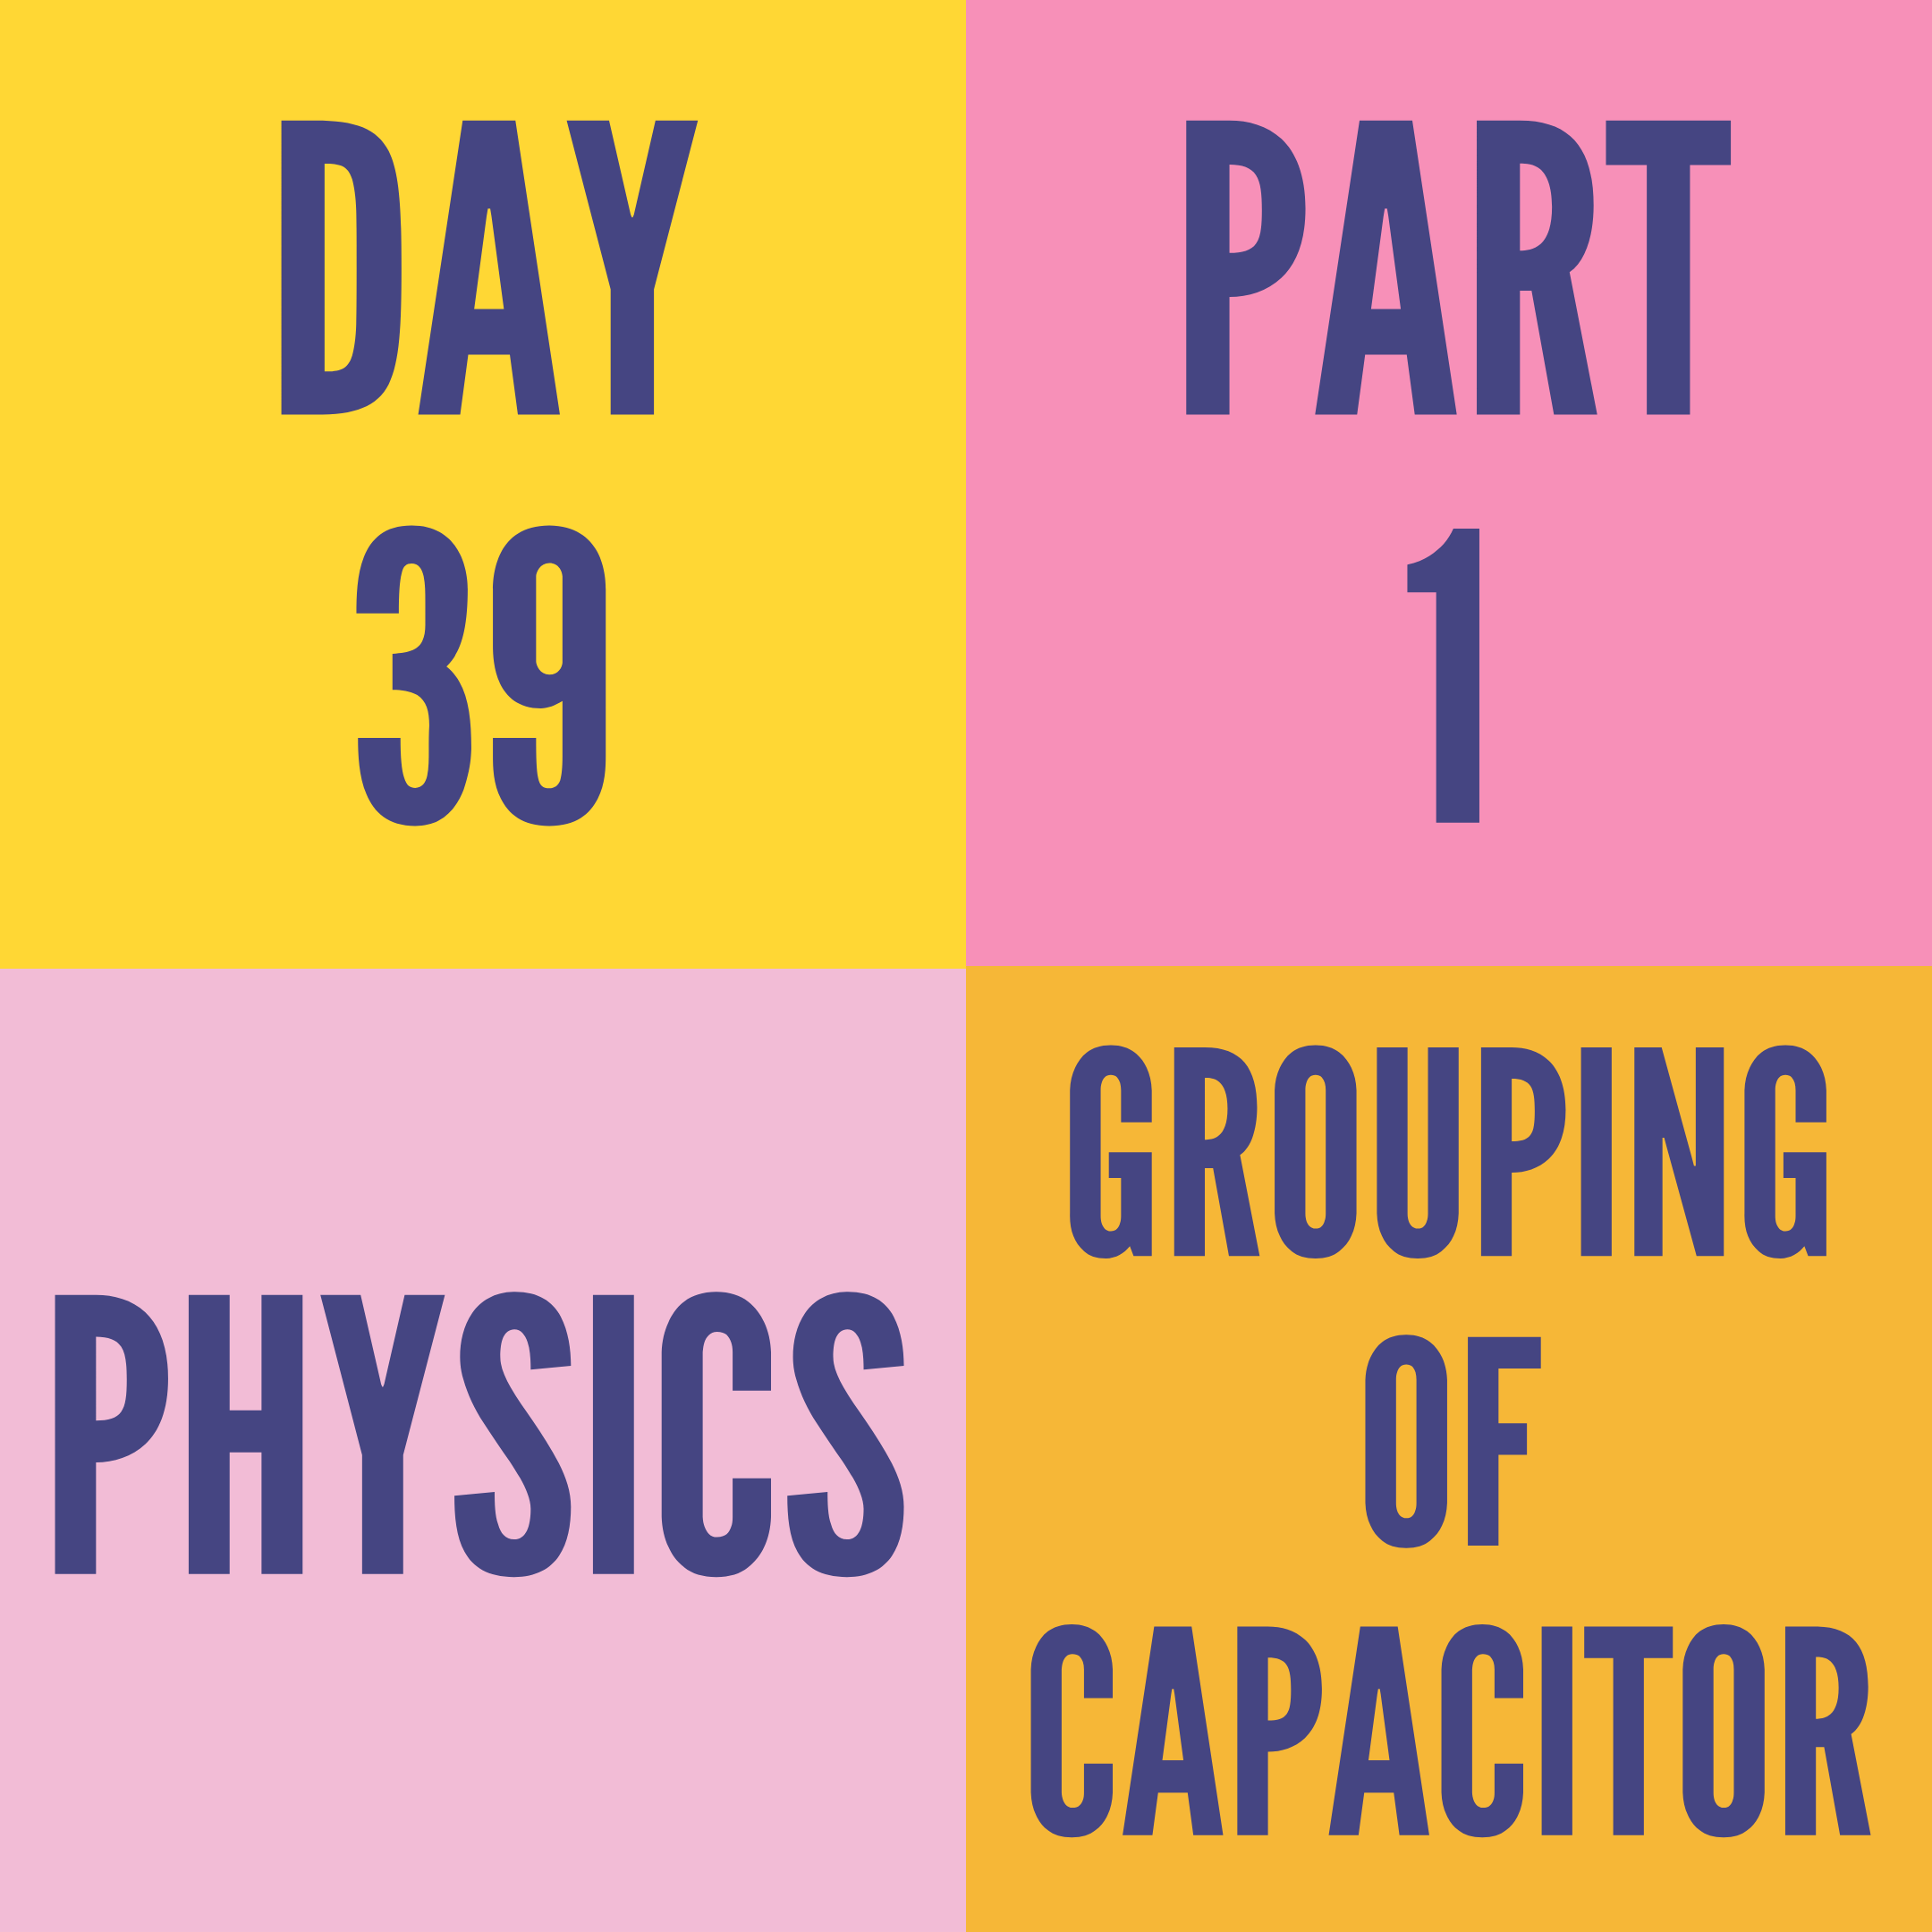 DAY-39 PART-1  GROUPING OF CAPACITOR